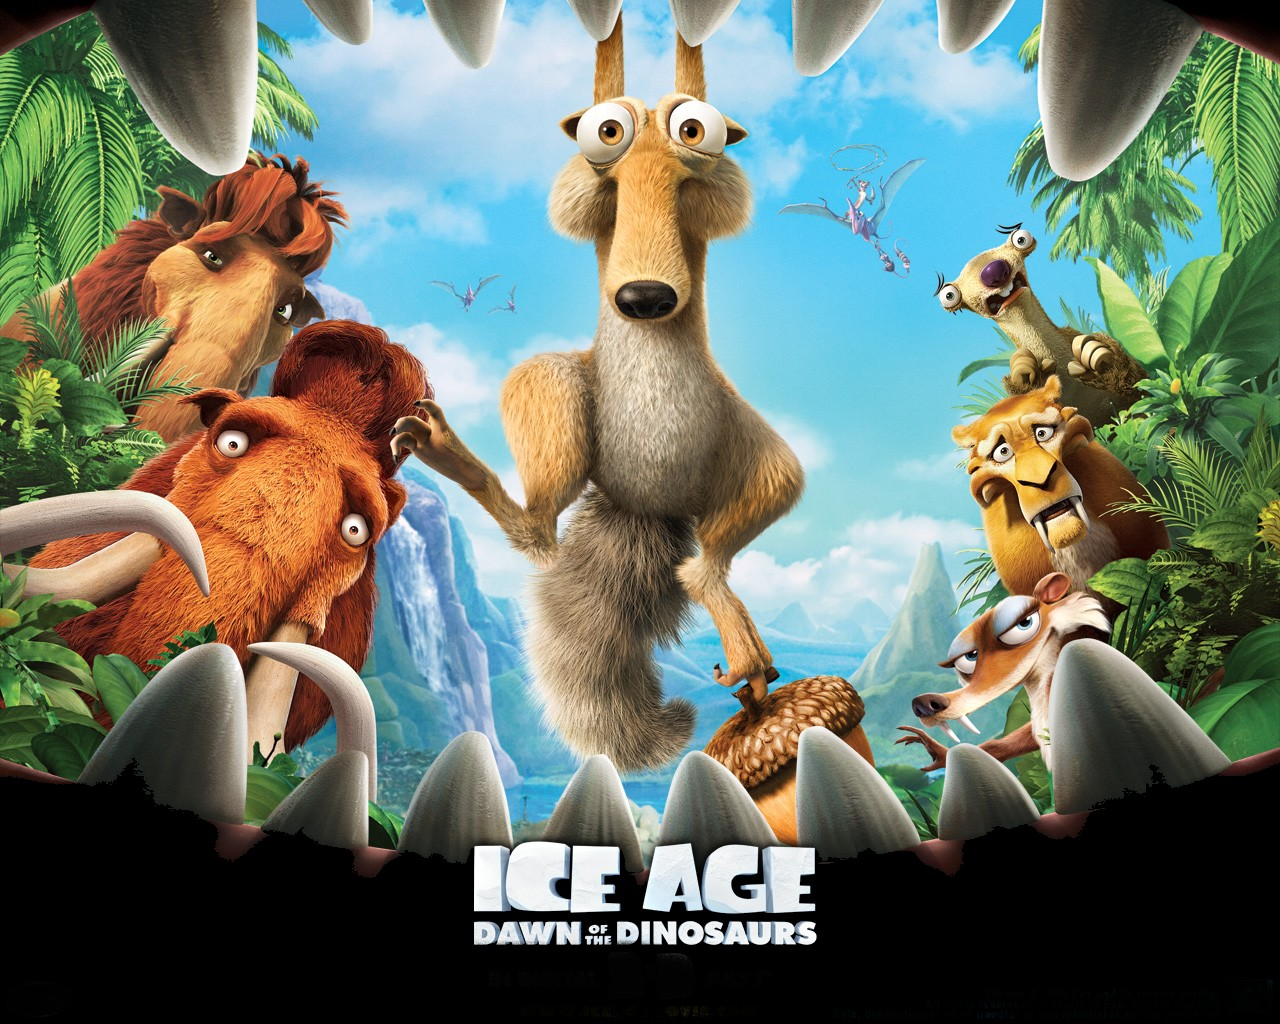 Ice age III: Dawn of the Dinosaurs Wallpapers | Wallpaper ...